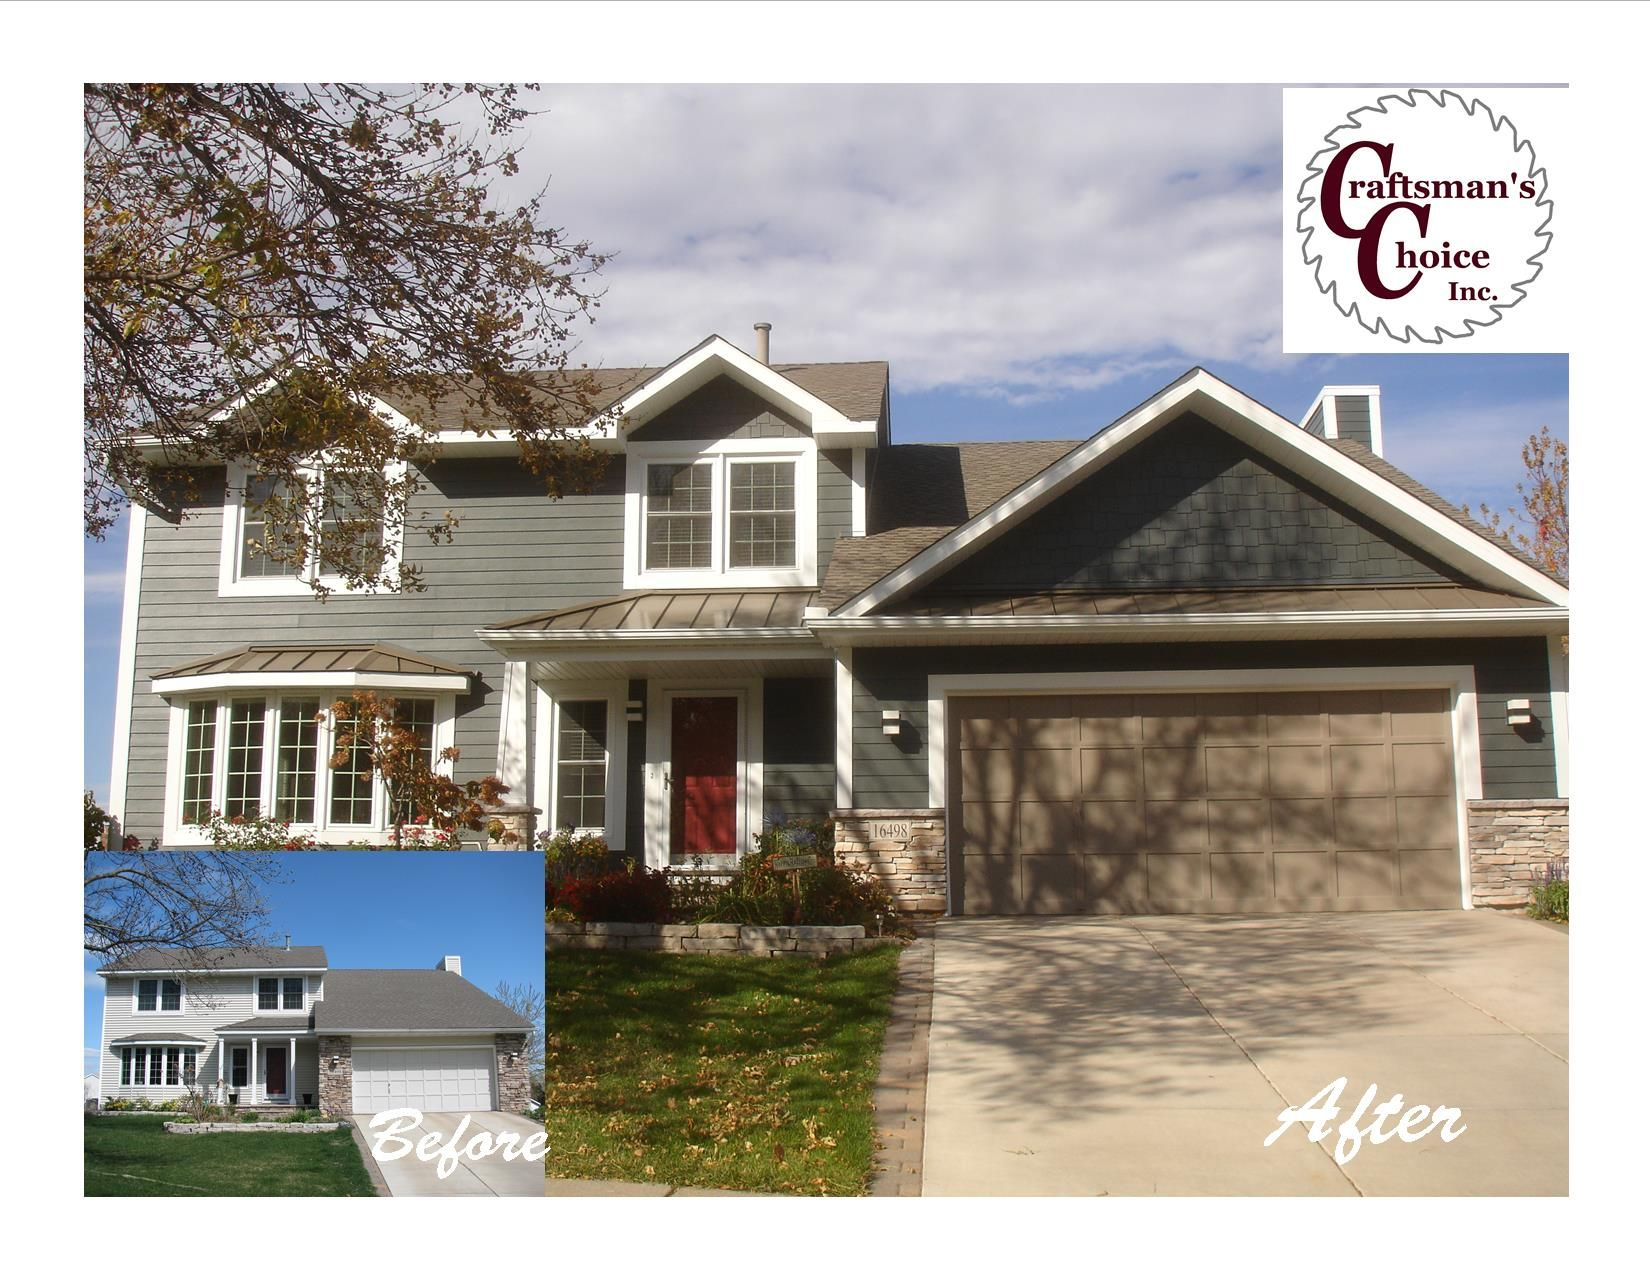 James Hardie Siding In Iron Gray Eden Prairie Mn Craftsman S Choice Inc Www Craftsmanschoice Exterior House Colors House Exterior House Styles